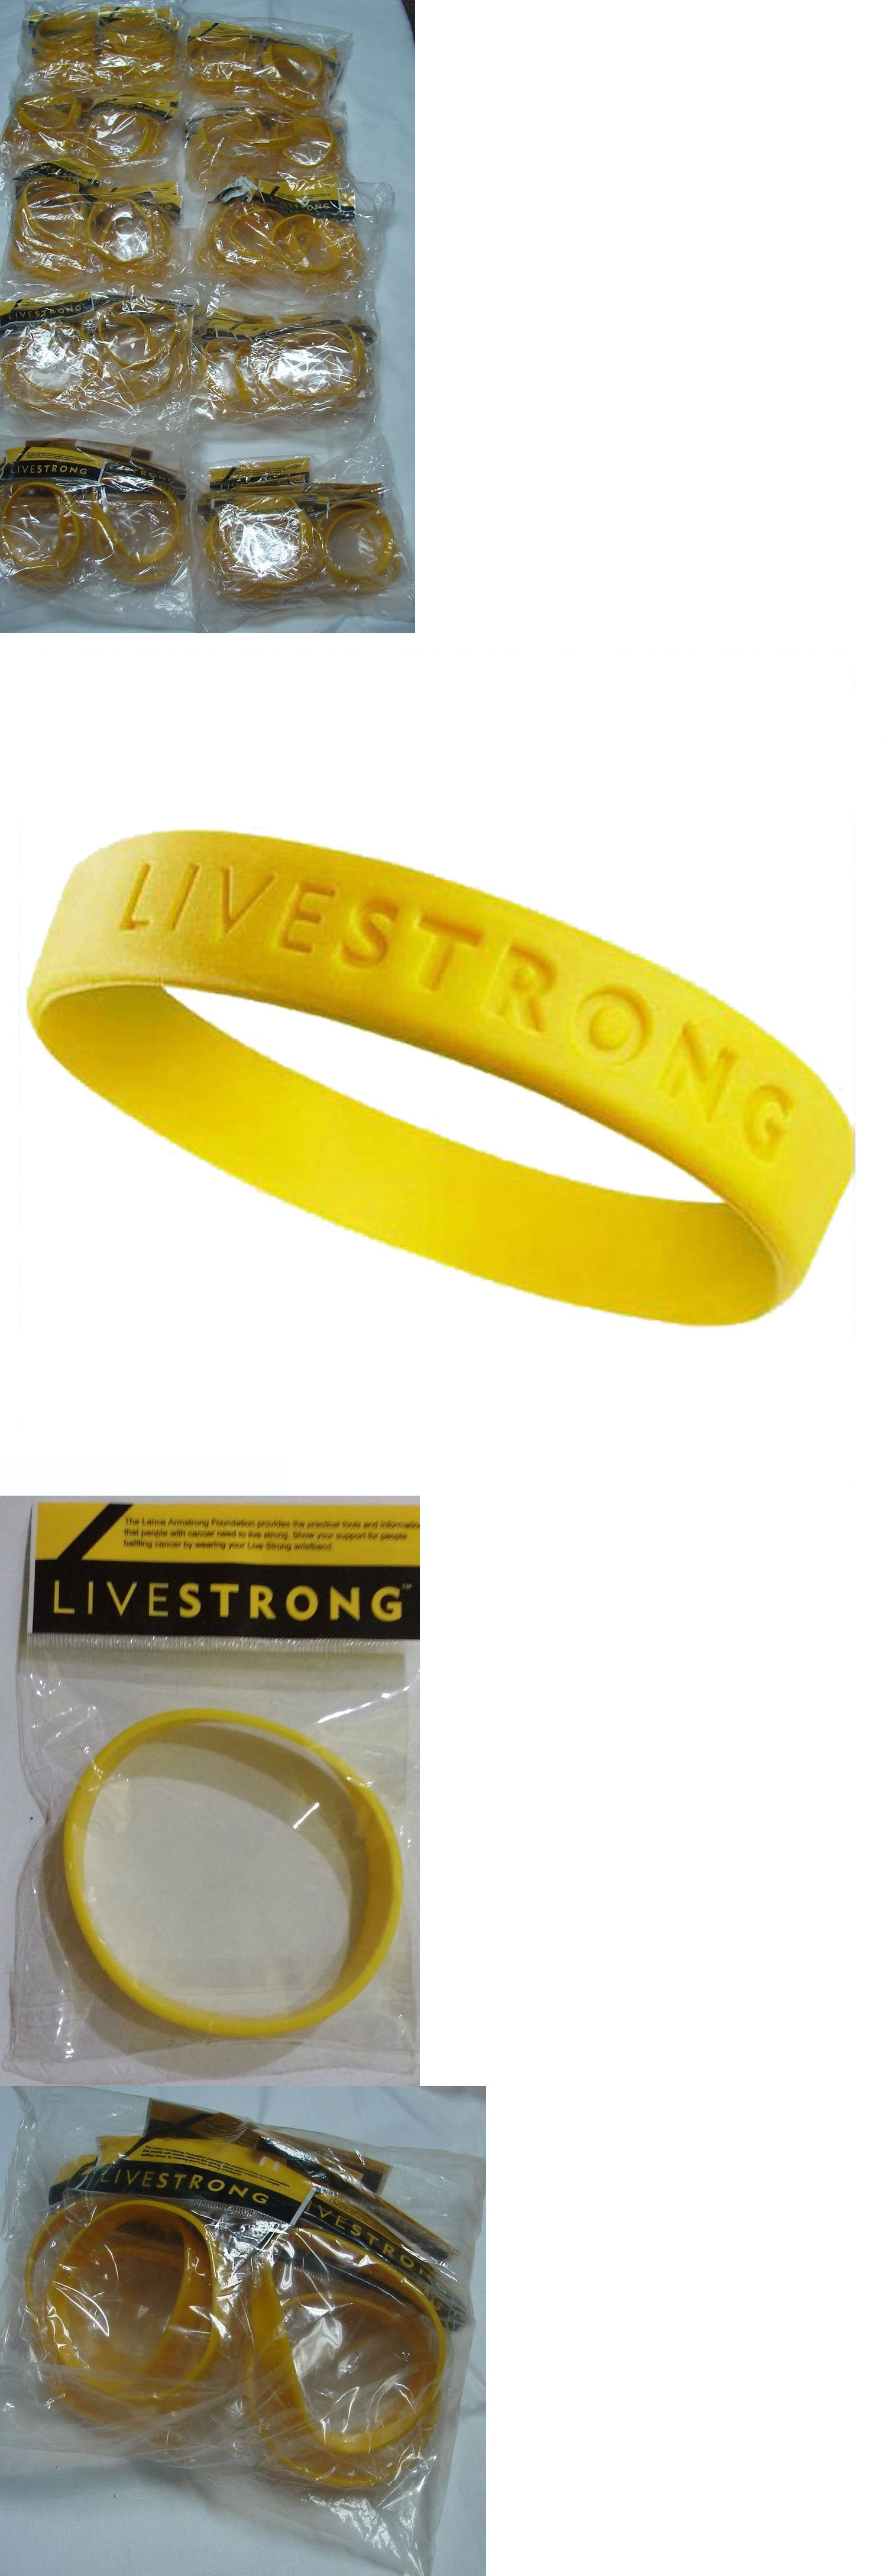 Wristbands 169276 100 Livestrong Live Strong Bracelet Lot Lance Armstrong New Size